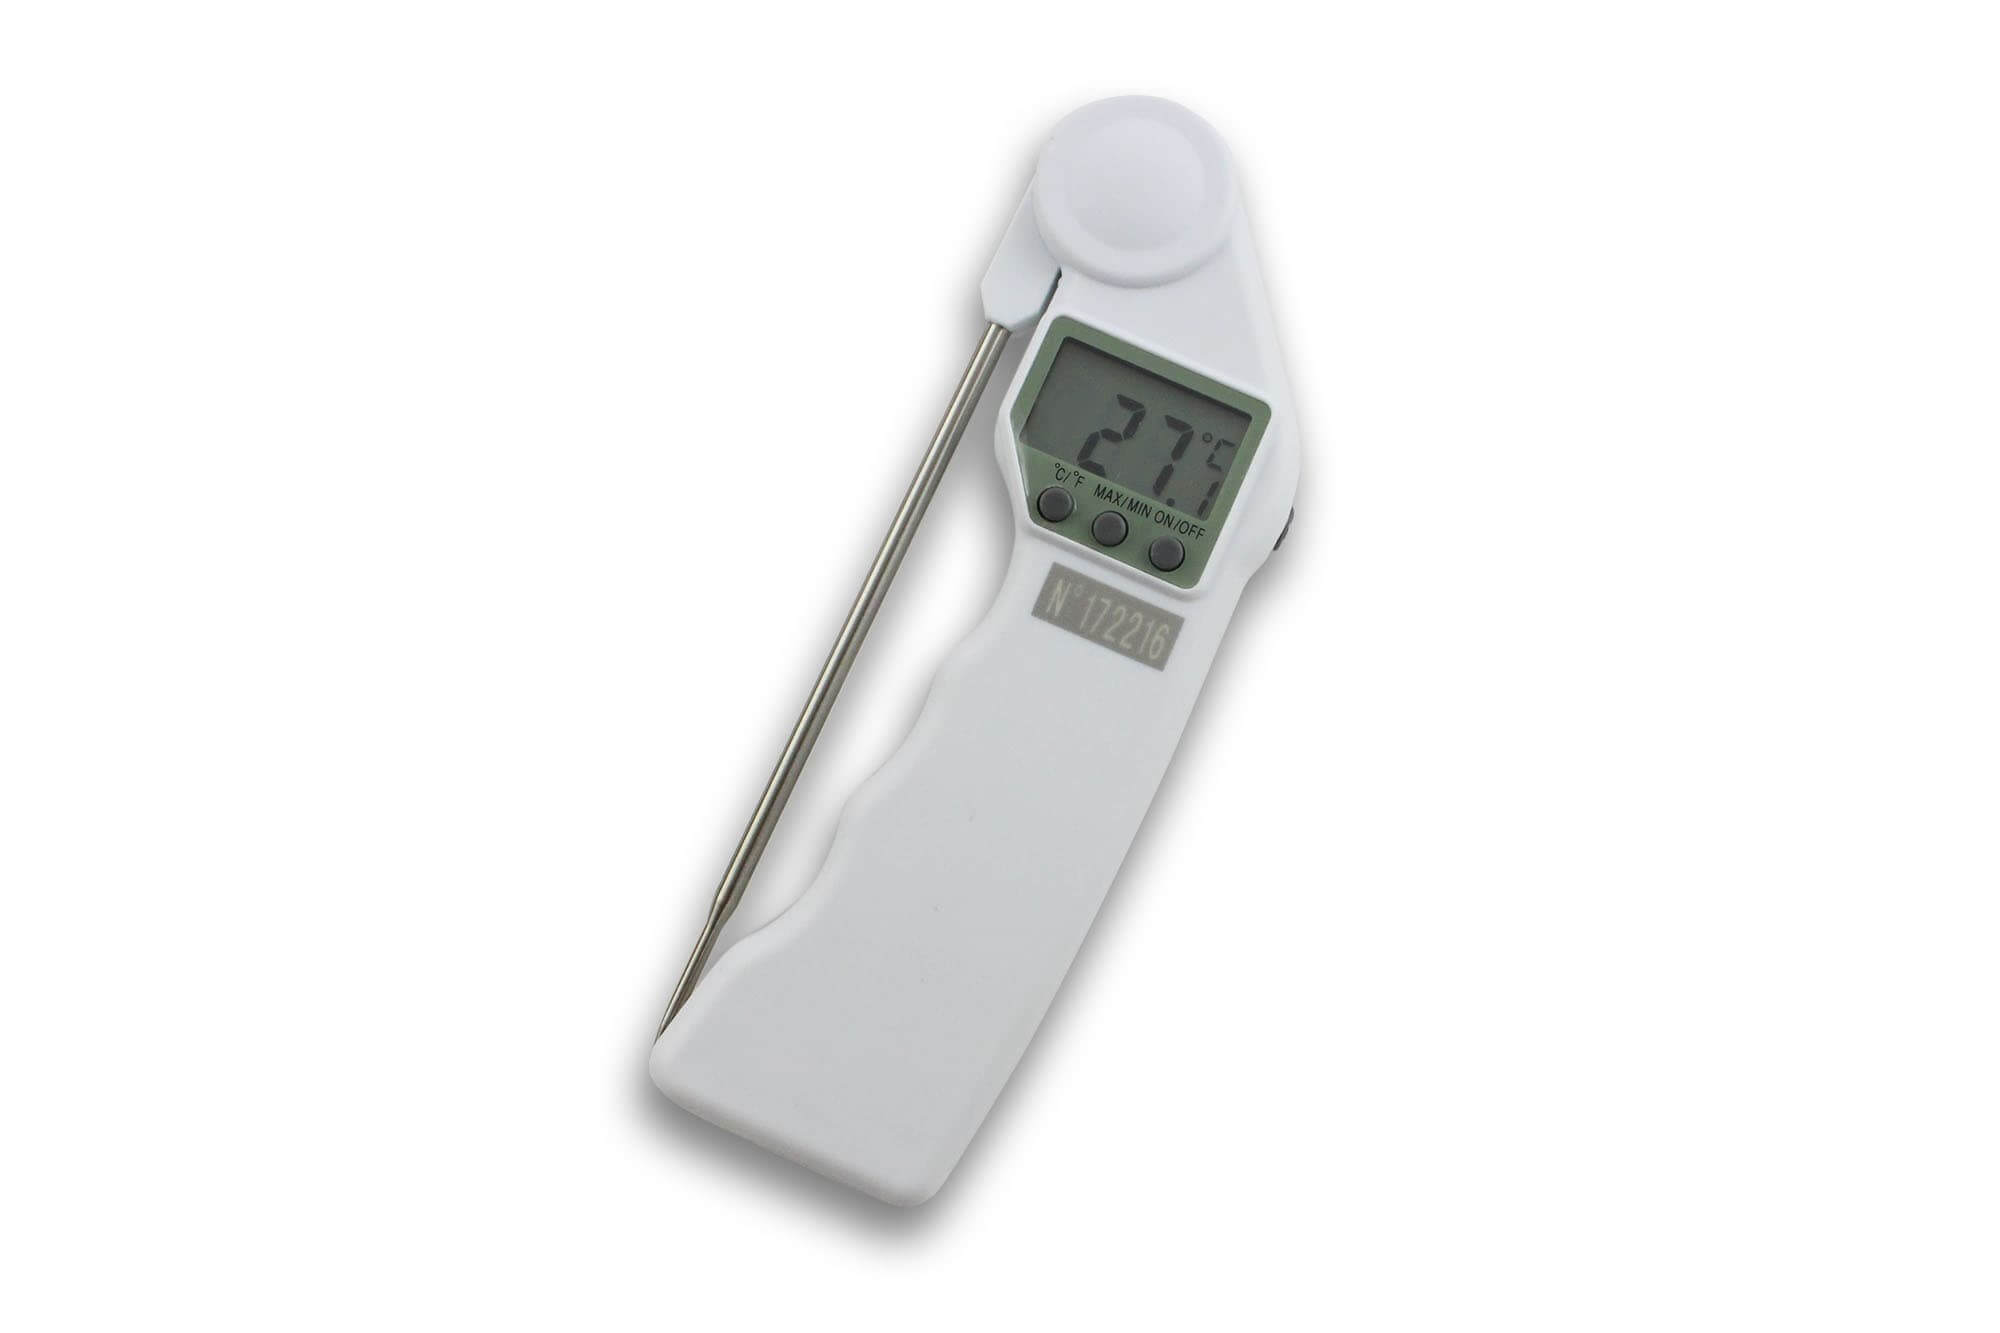 Thermomètre digital 50+300°C HACCP Alla France avec sonde rotative